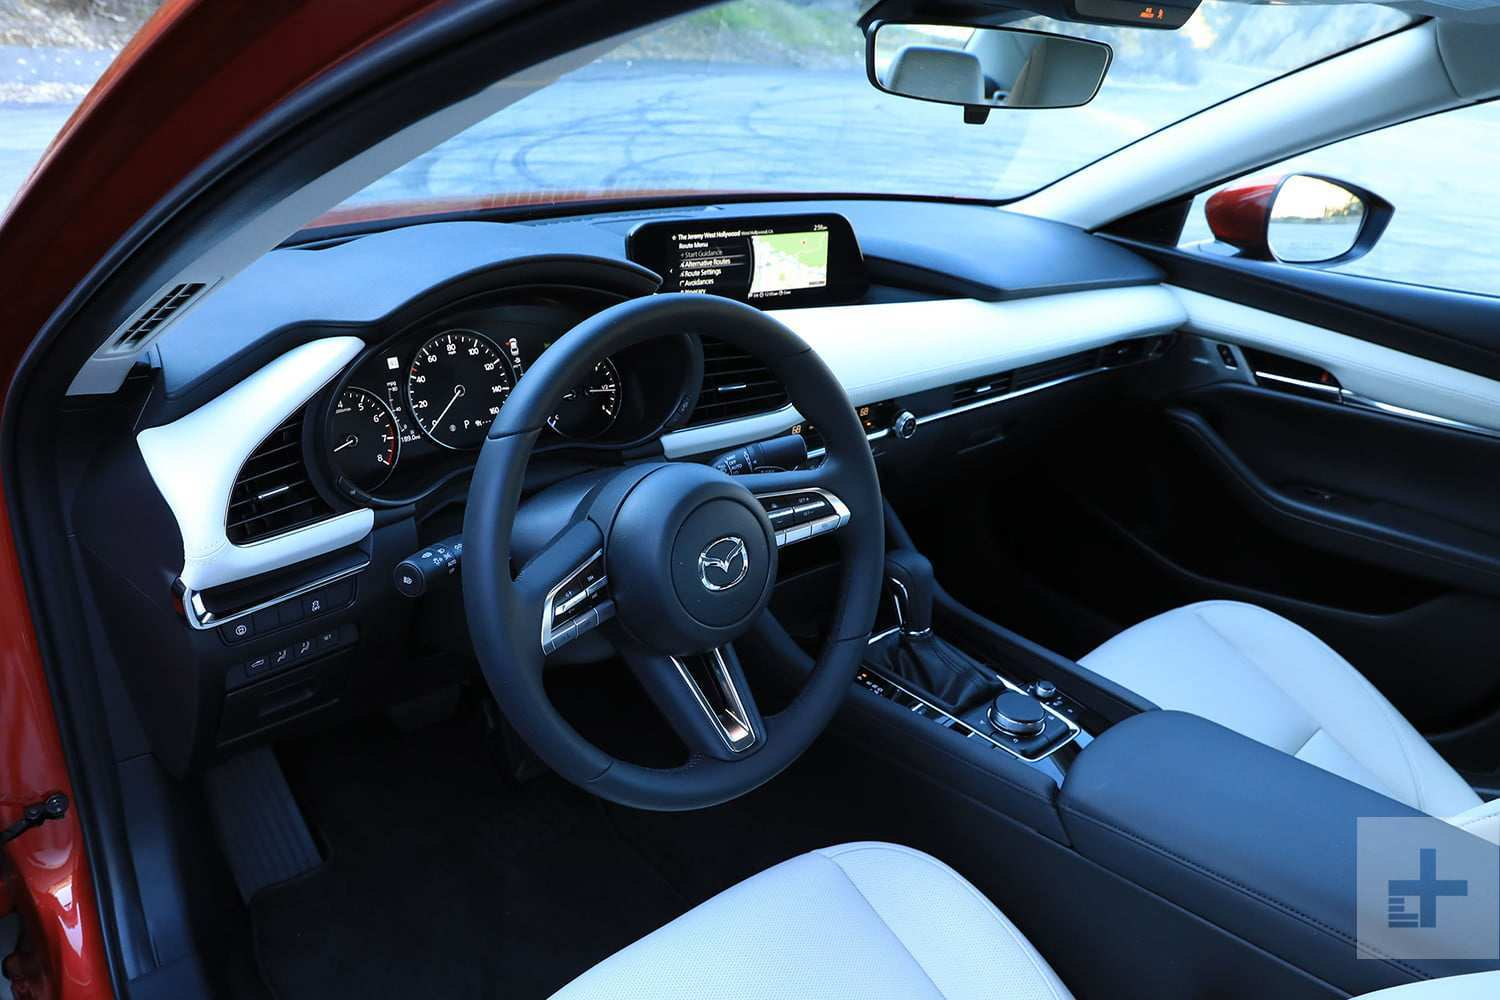 63 All New Mazda 3 2019 Interior Performance And New Engine